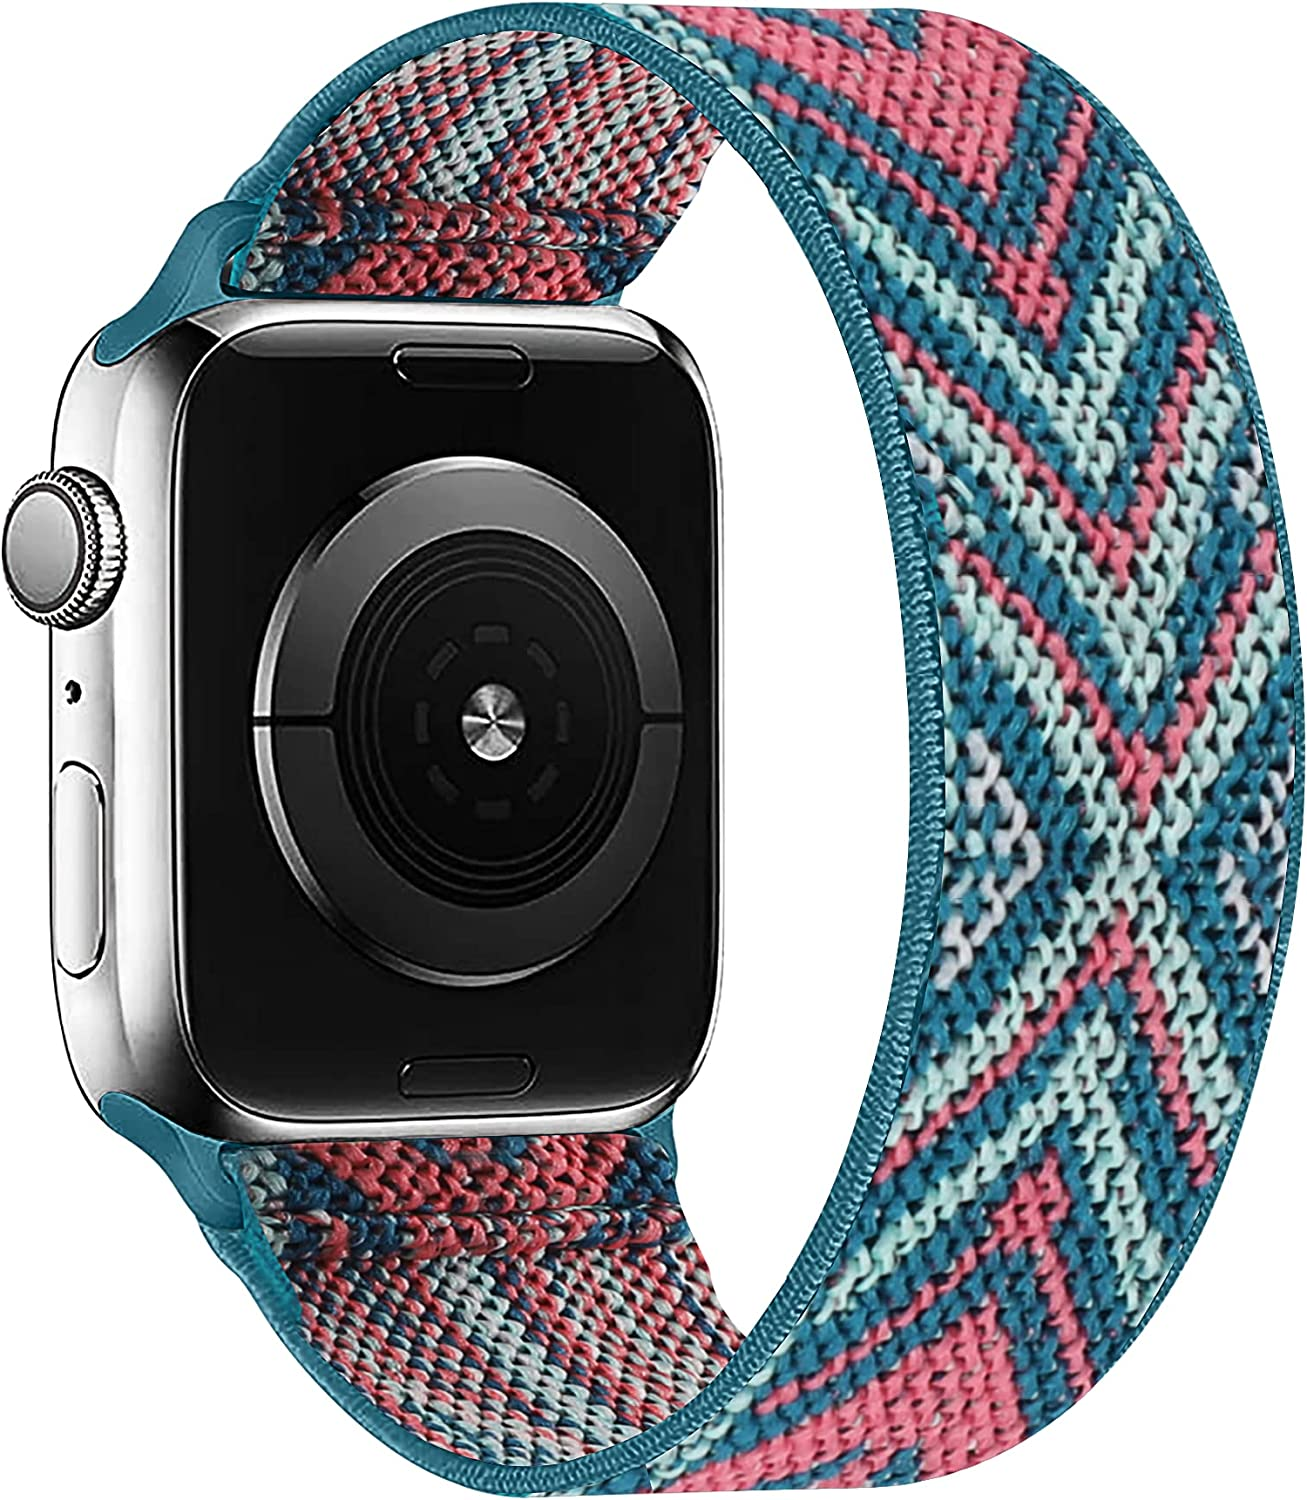 OHCBOOGIE Elastic Nylon Solo Loop Strap Compatible with Apple Watch Bands 38mm 40mm,Stretchy Braided with No Clasps/Buckles Sport Women Men Replacement Wristband for iWatch Series 6/SE/5/4/3/2/1